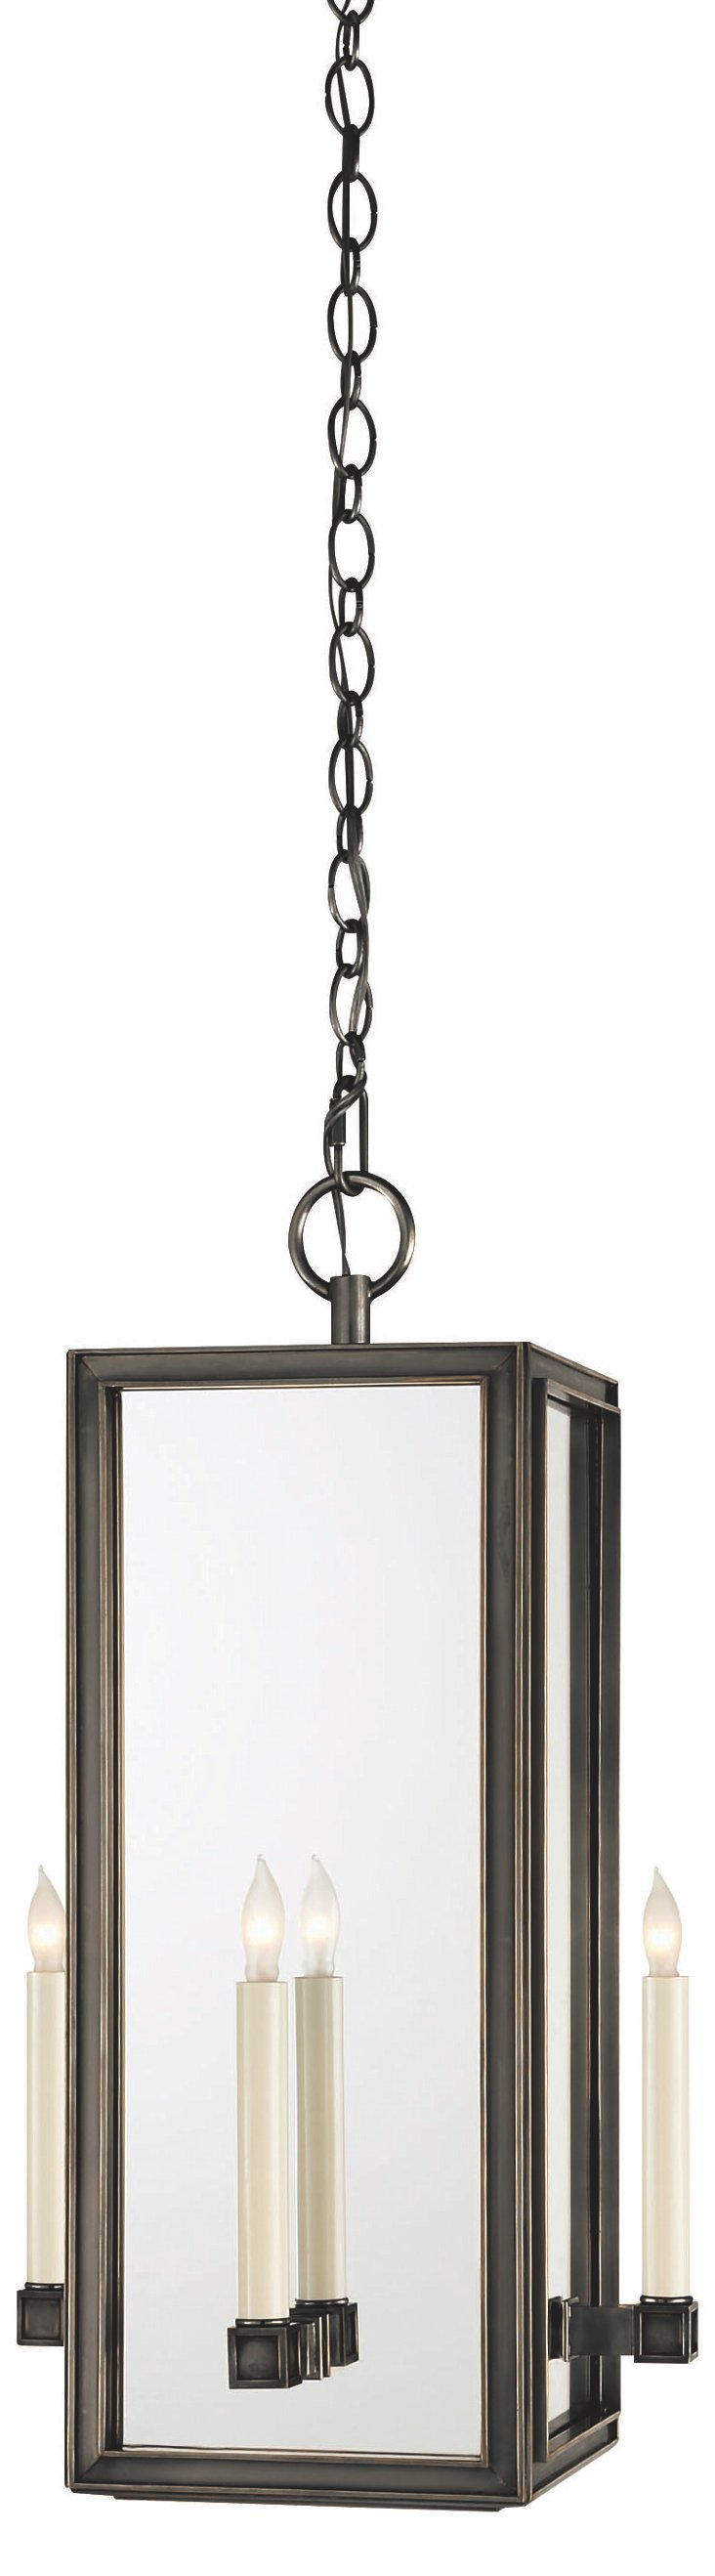 Lund 4-Light Pendant, Bronze